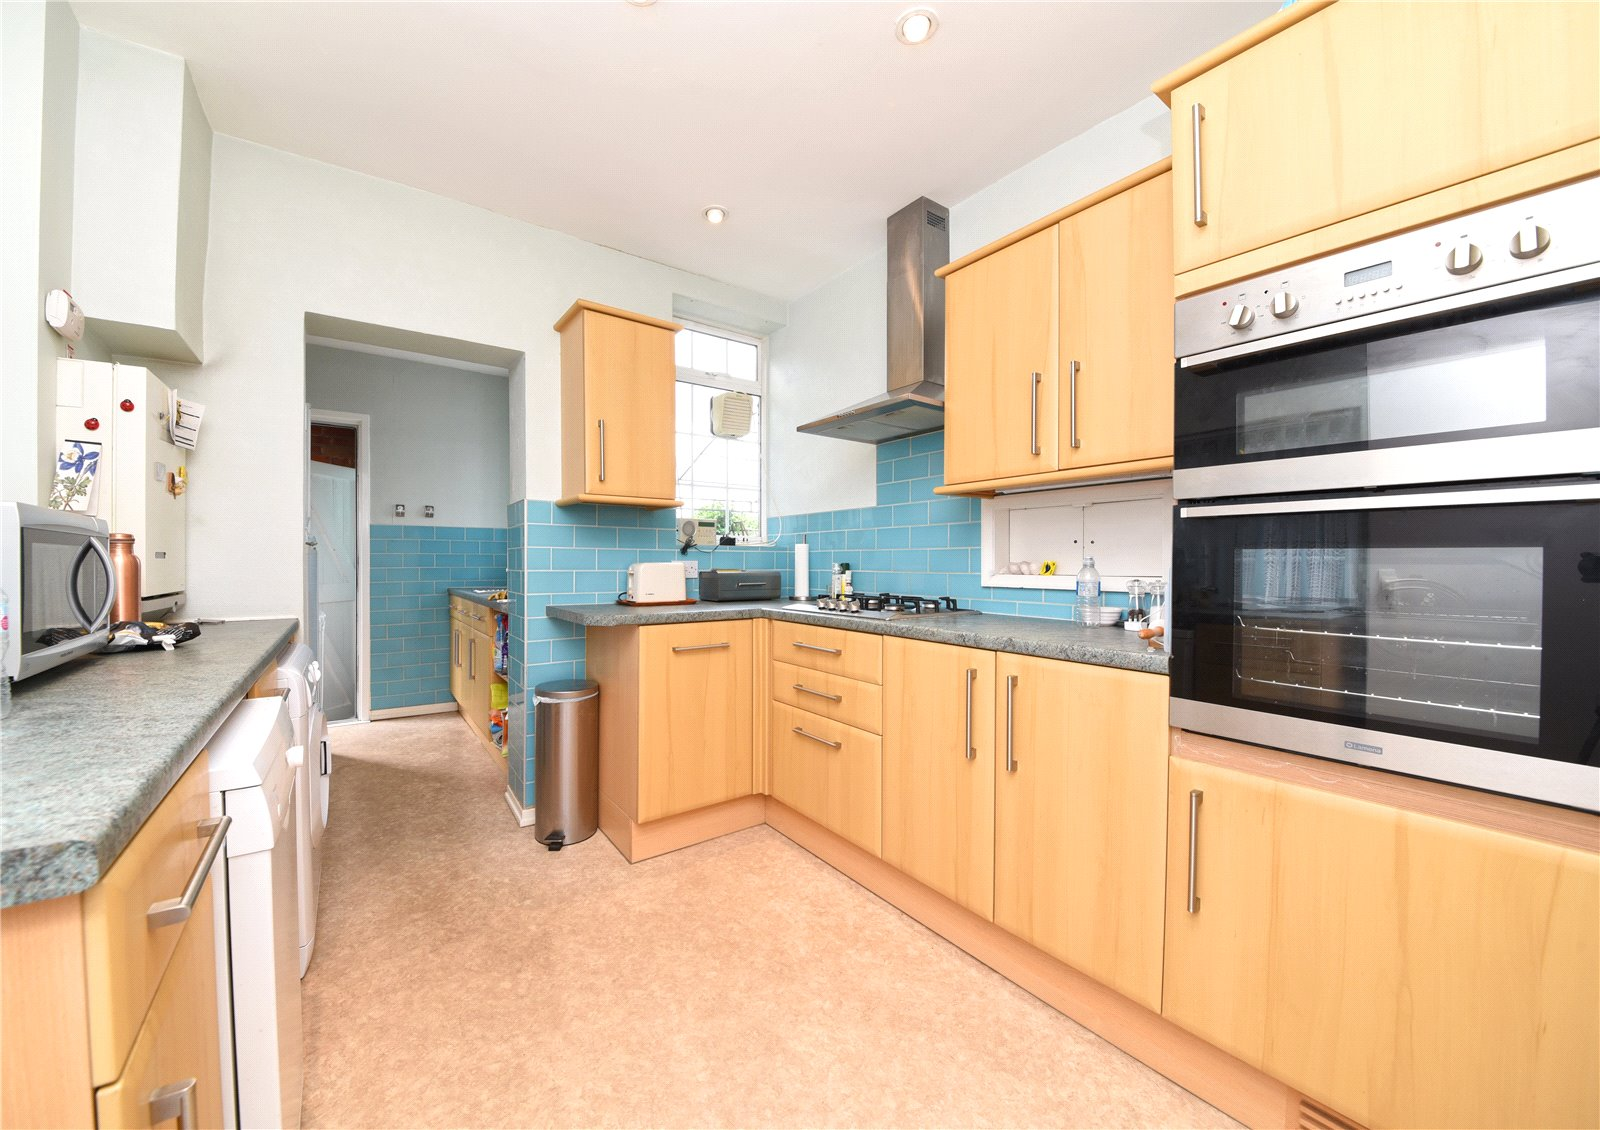 3 bed house for sale in Bramber Road, London, N12